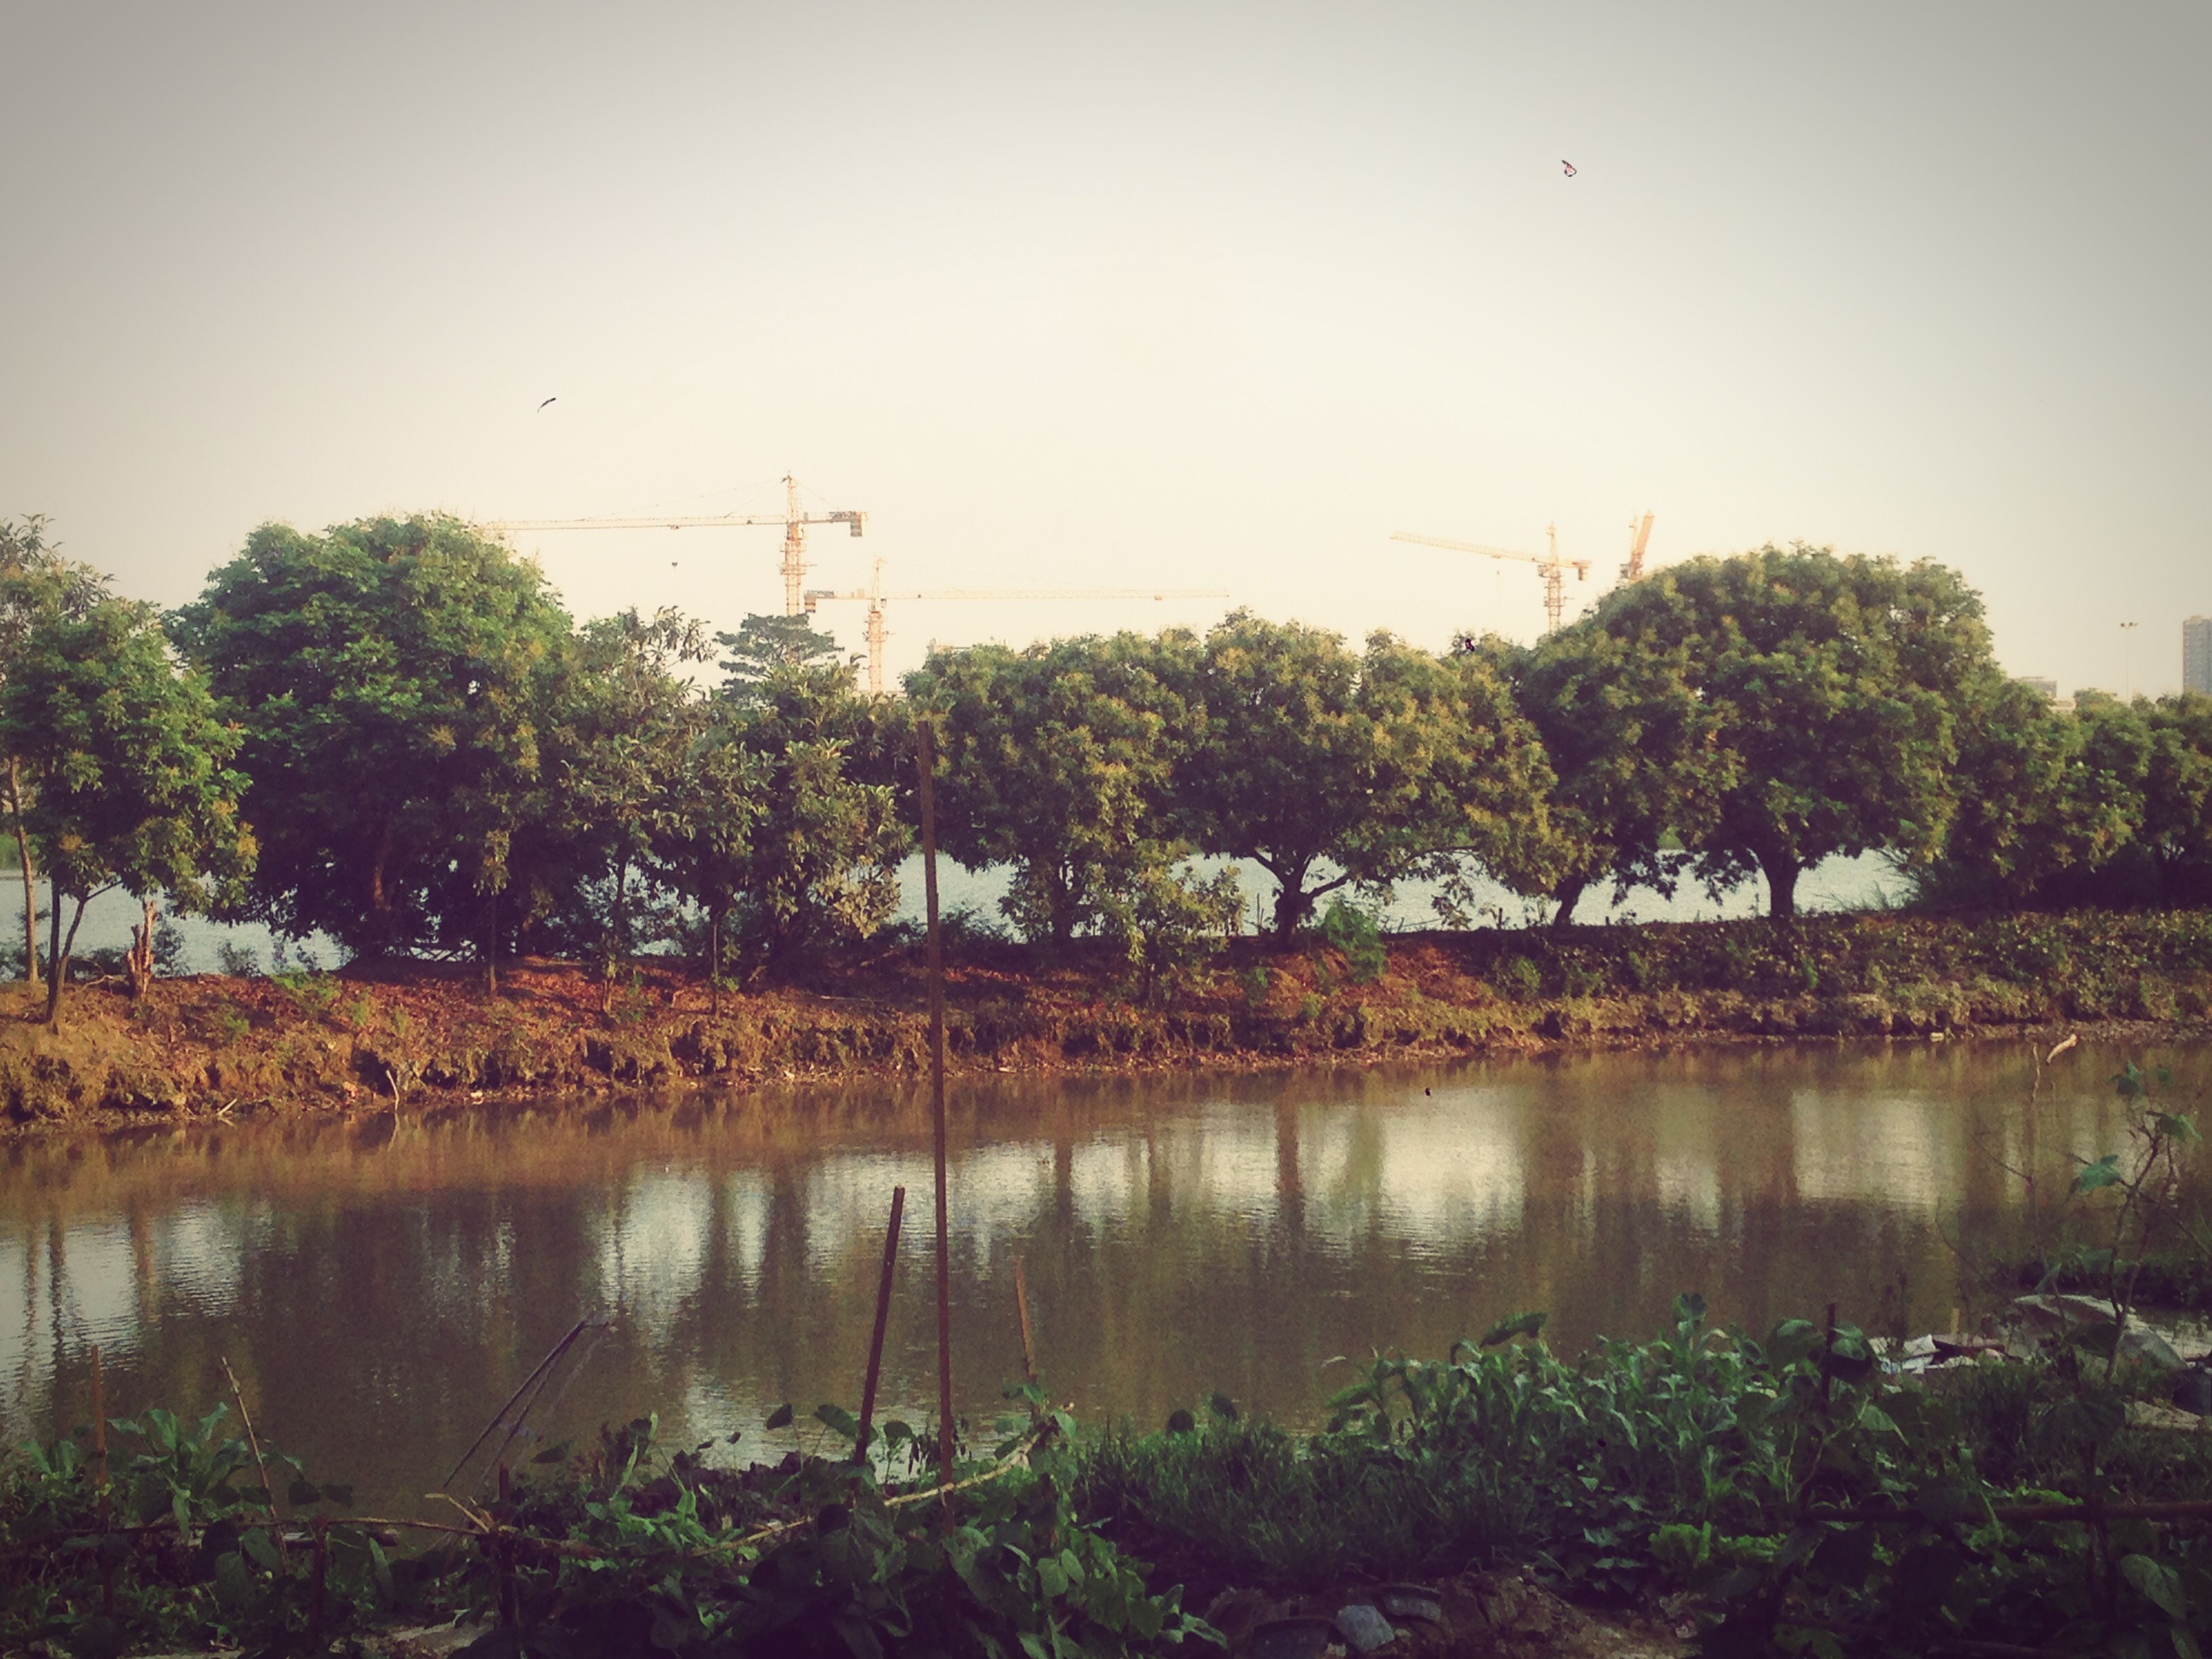 water, tree, clear sky, lake, reflection, tranquility, growth, tranquil scene, copy space, nature, bird, built structure, beauty in nature, plant, building exterior, scenics, river, architecture, sky, waterfront